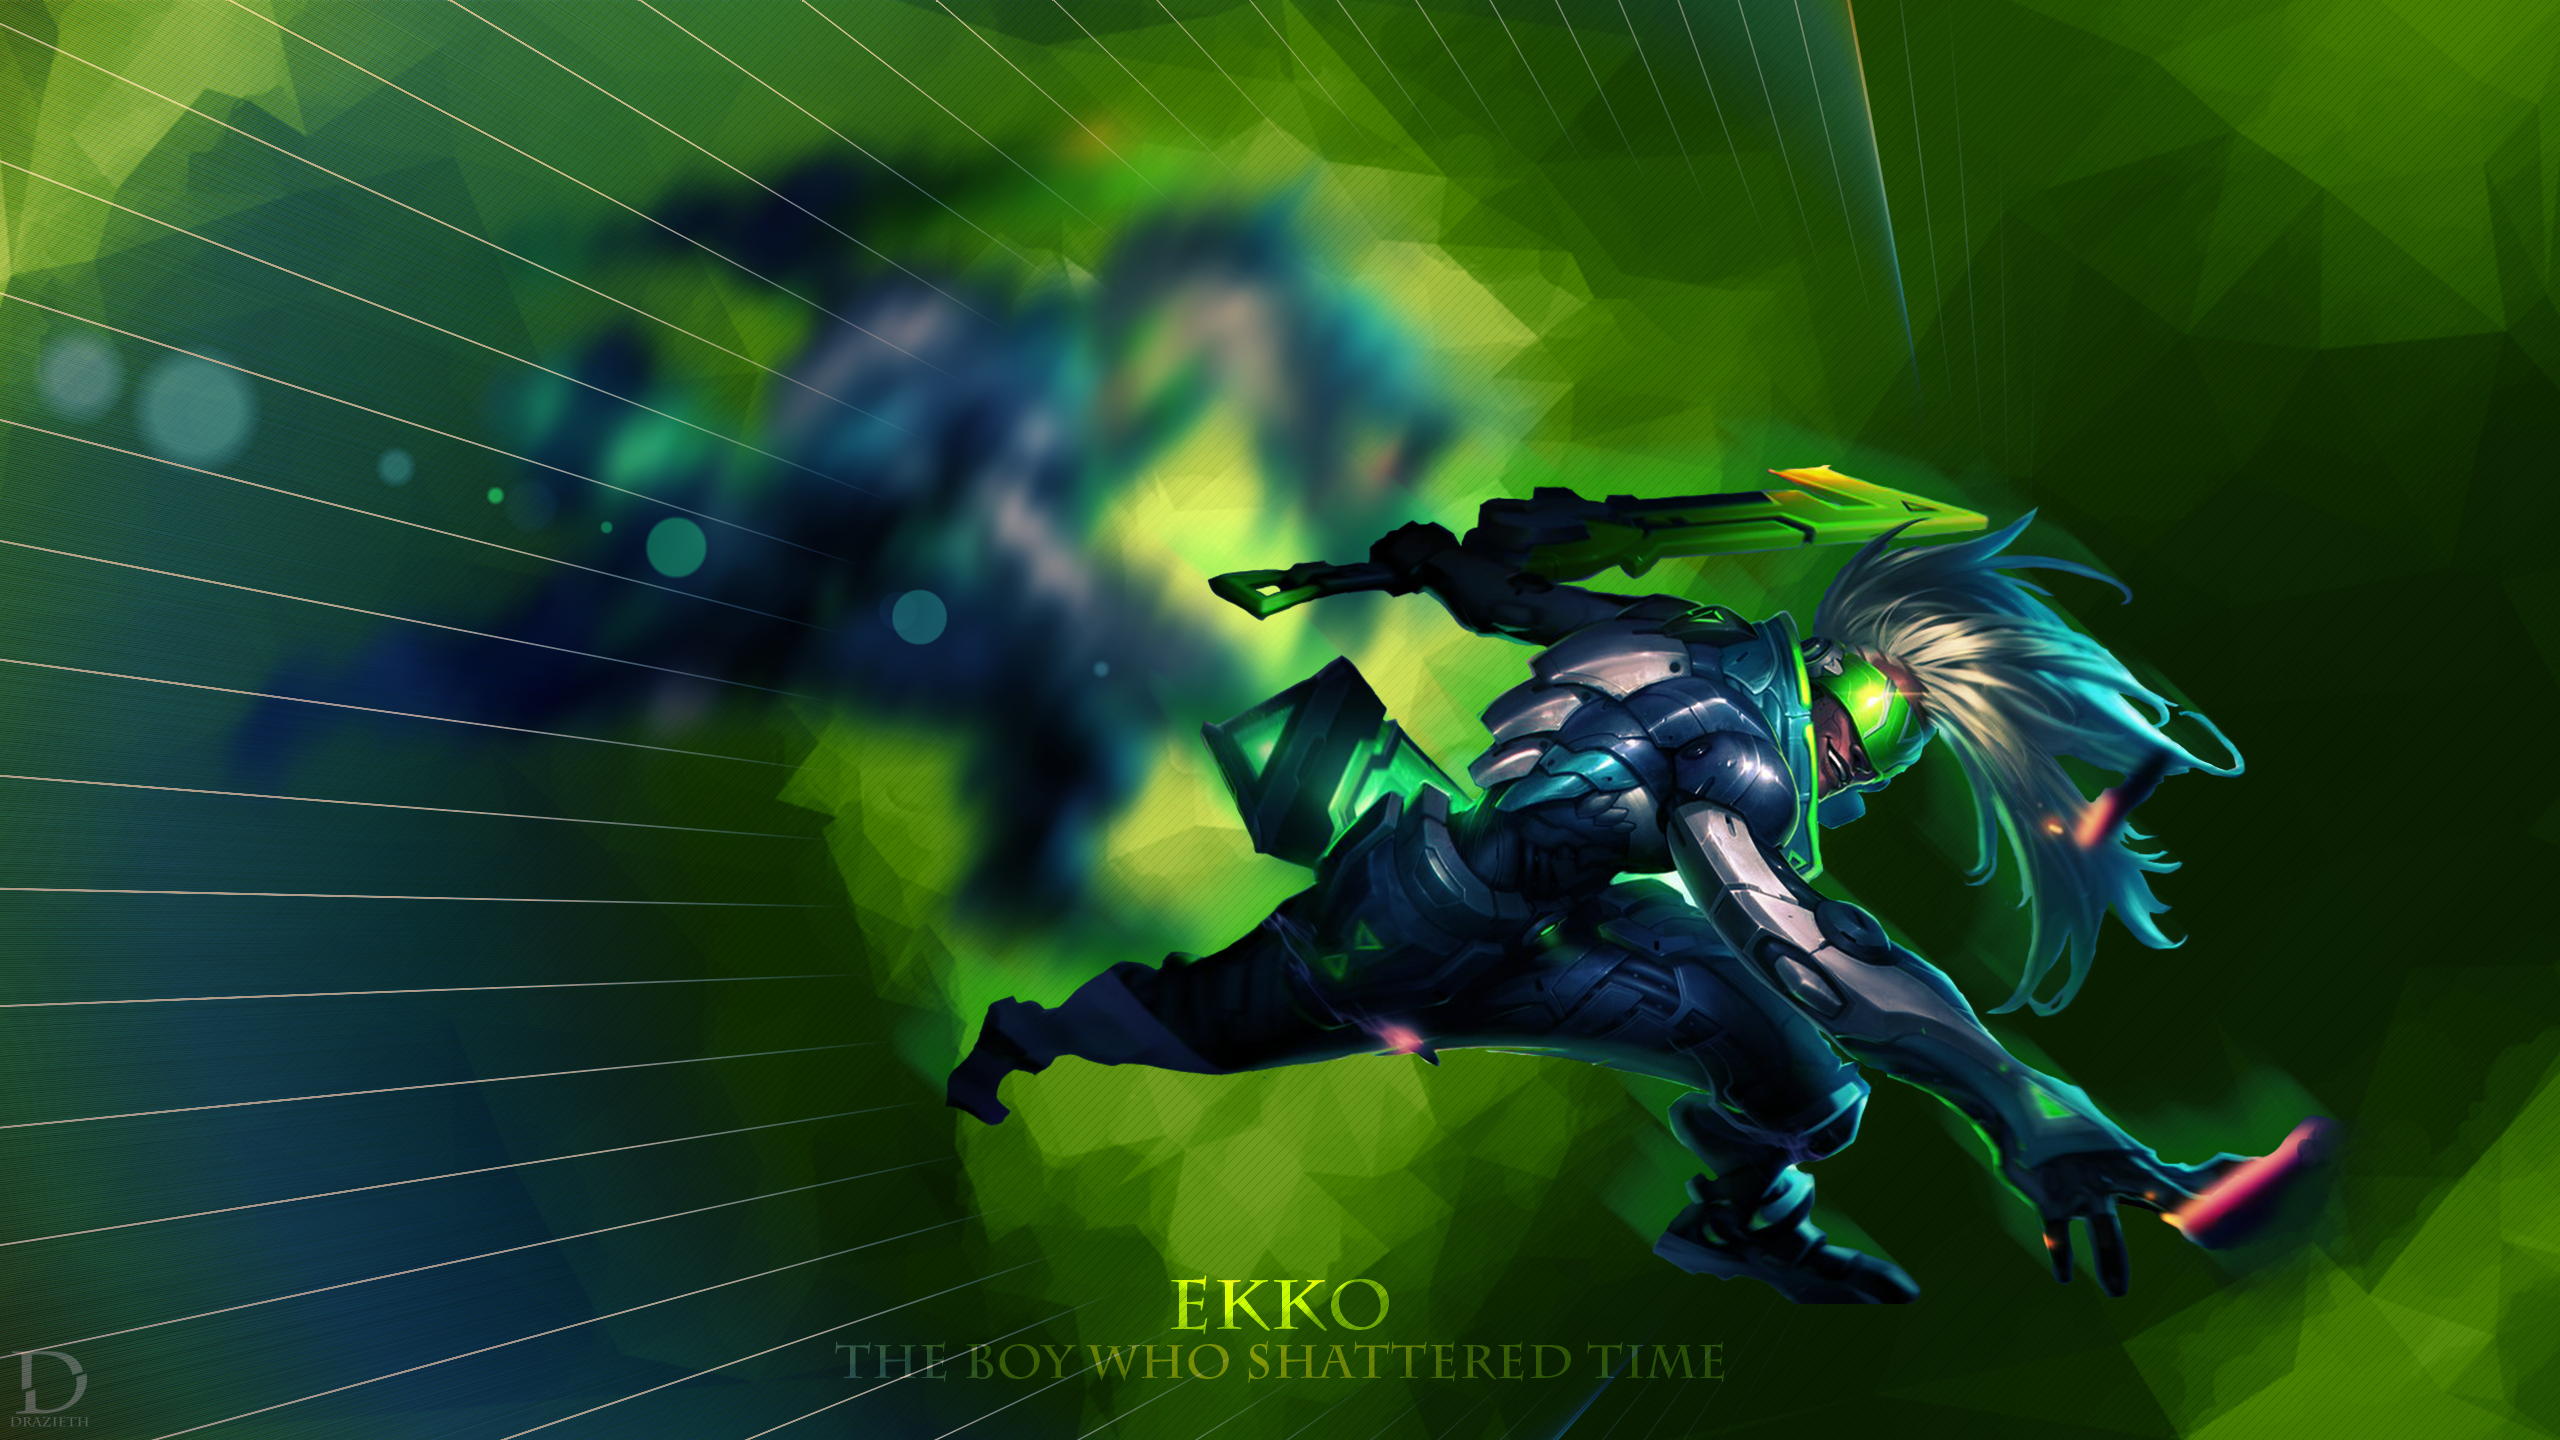 PROJECT: Ekko V2 wallpaper